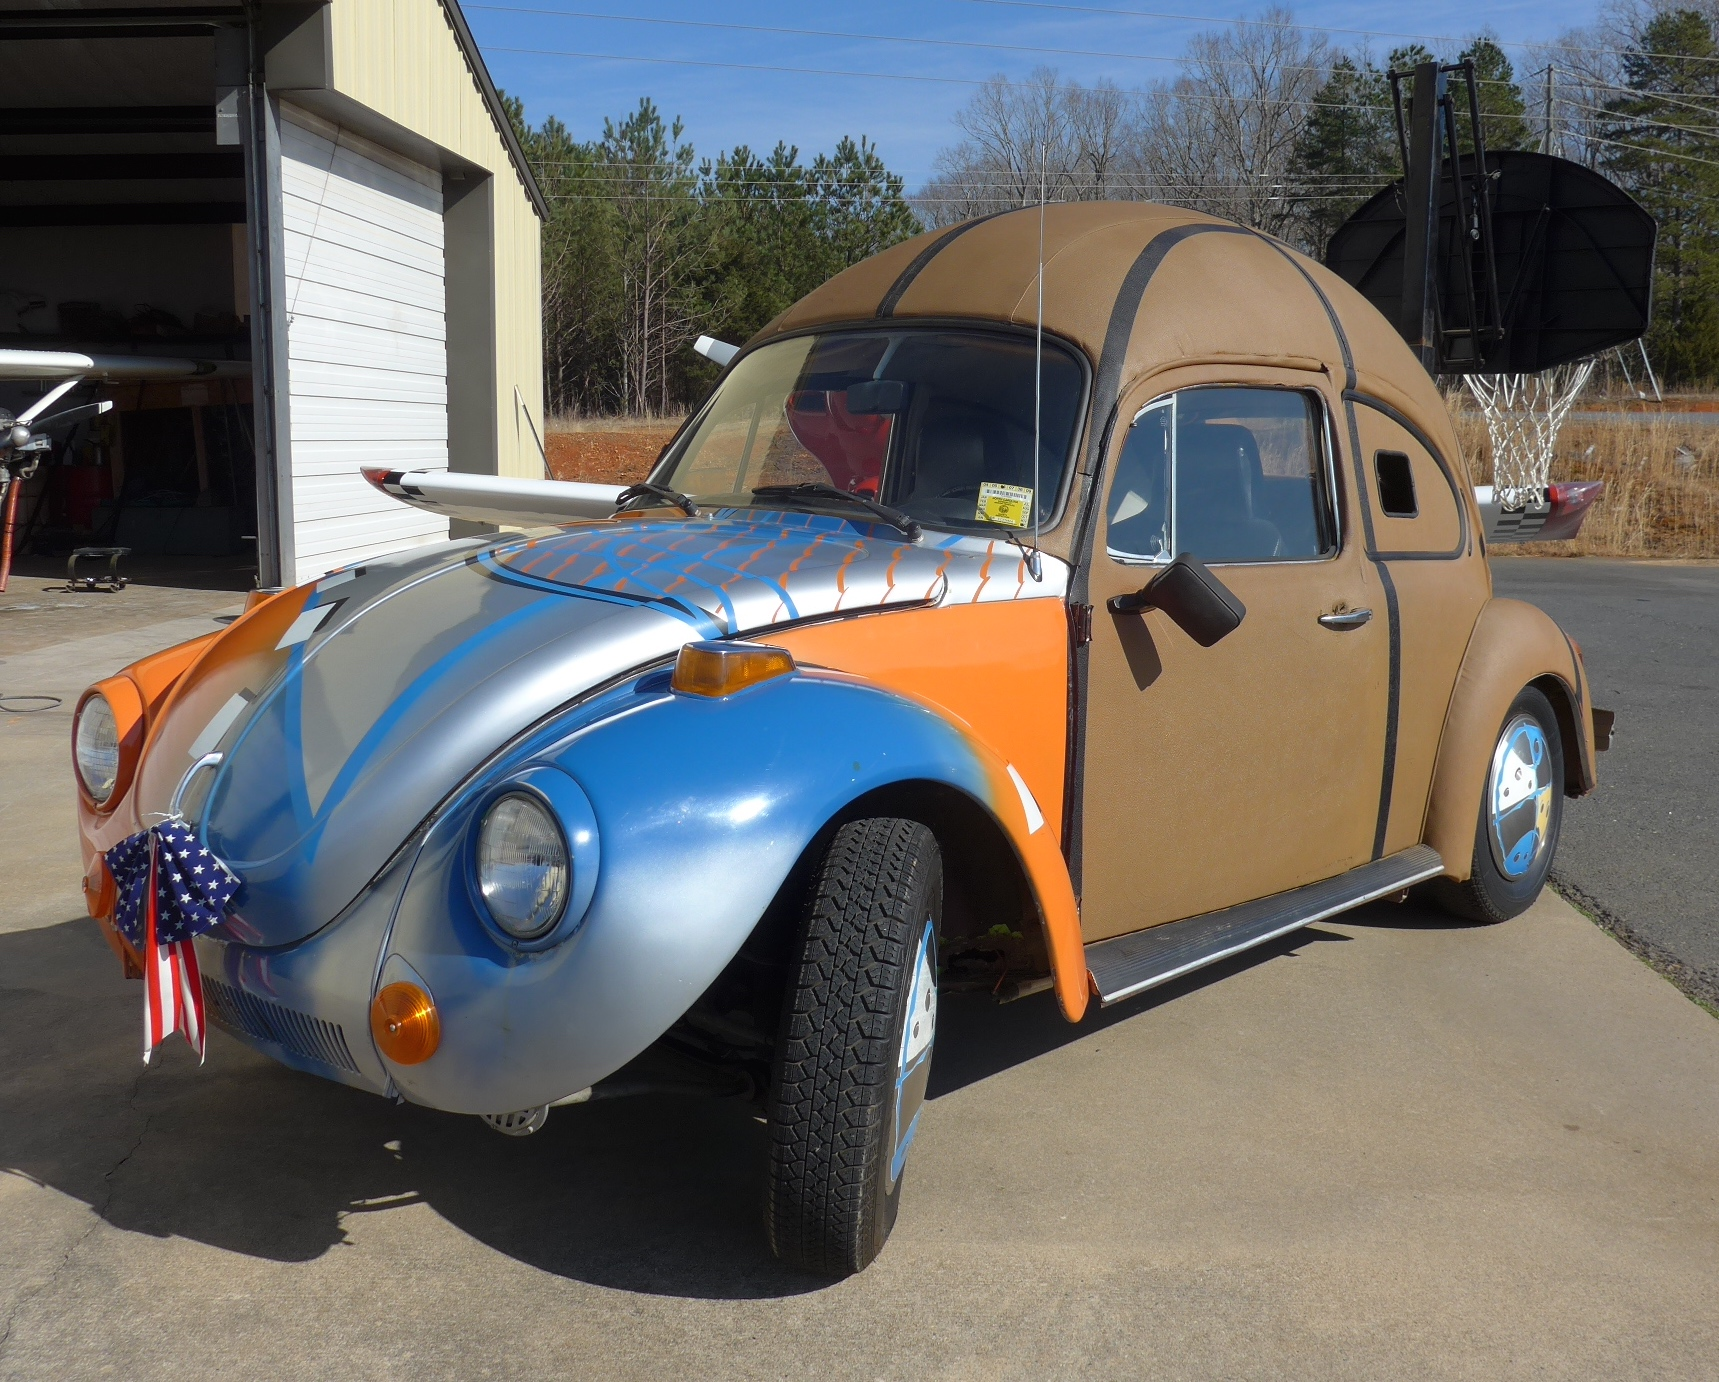 1975 Vw Super Beetle